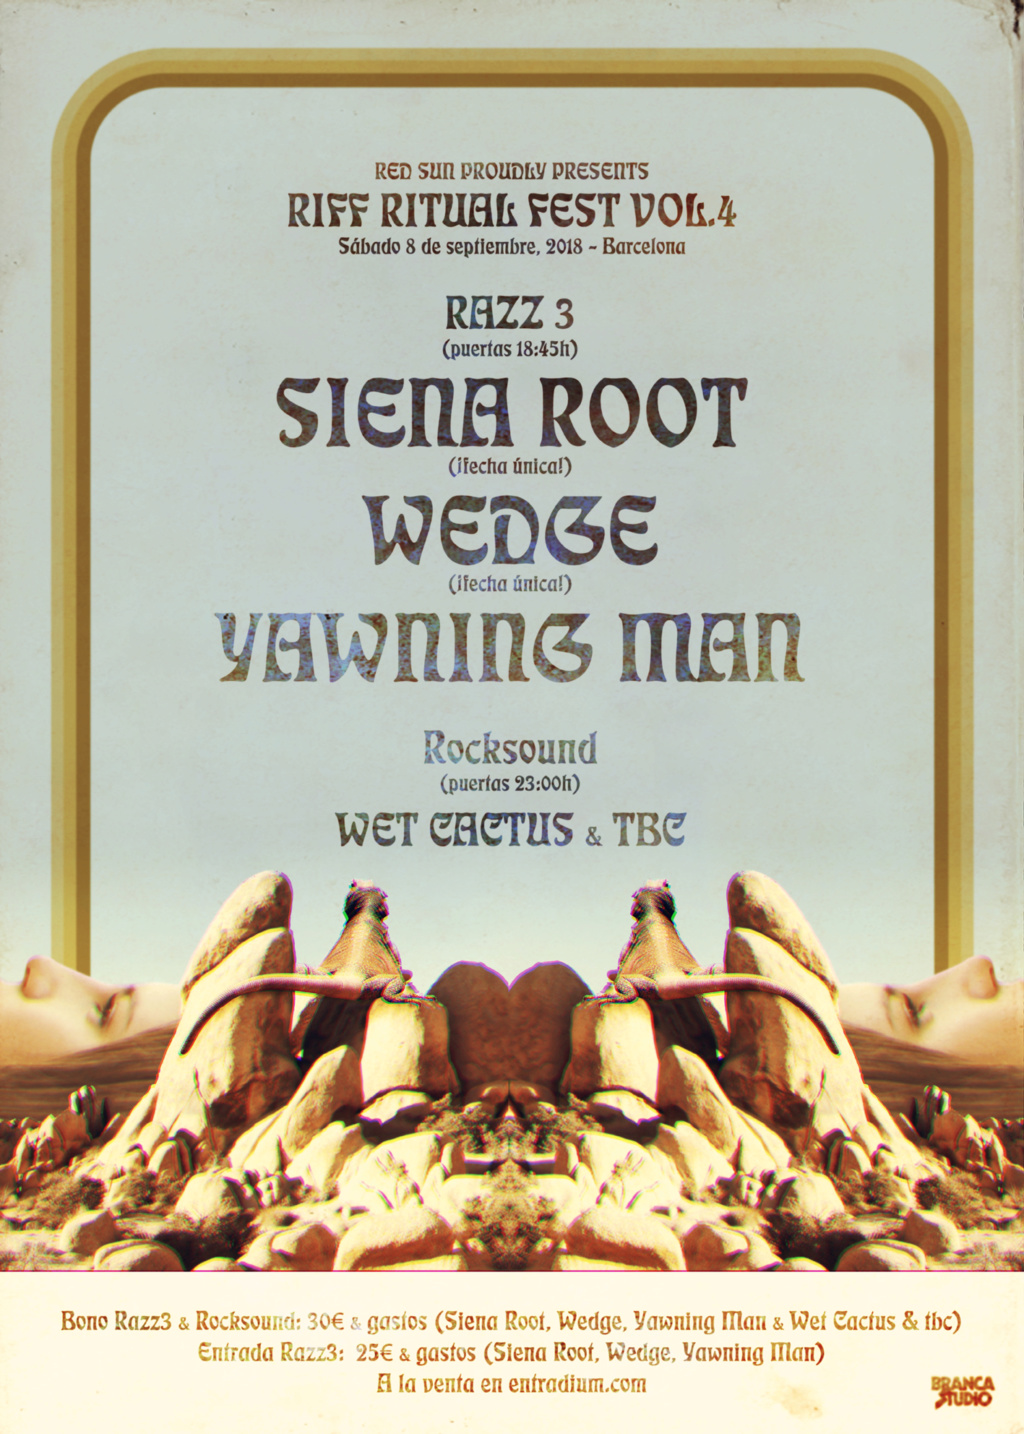 RIFF RITUAL FEST Vol.4 / 8 sept - Siena Root, Wedge, Yawning Man, Wet Cactus, Miss Lava (BCN) Rrfweb10